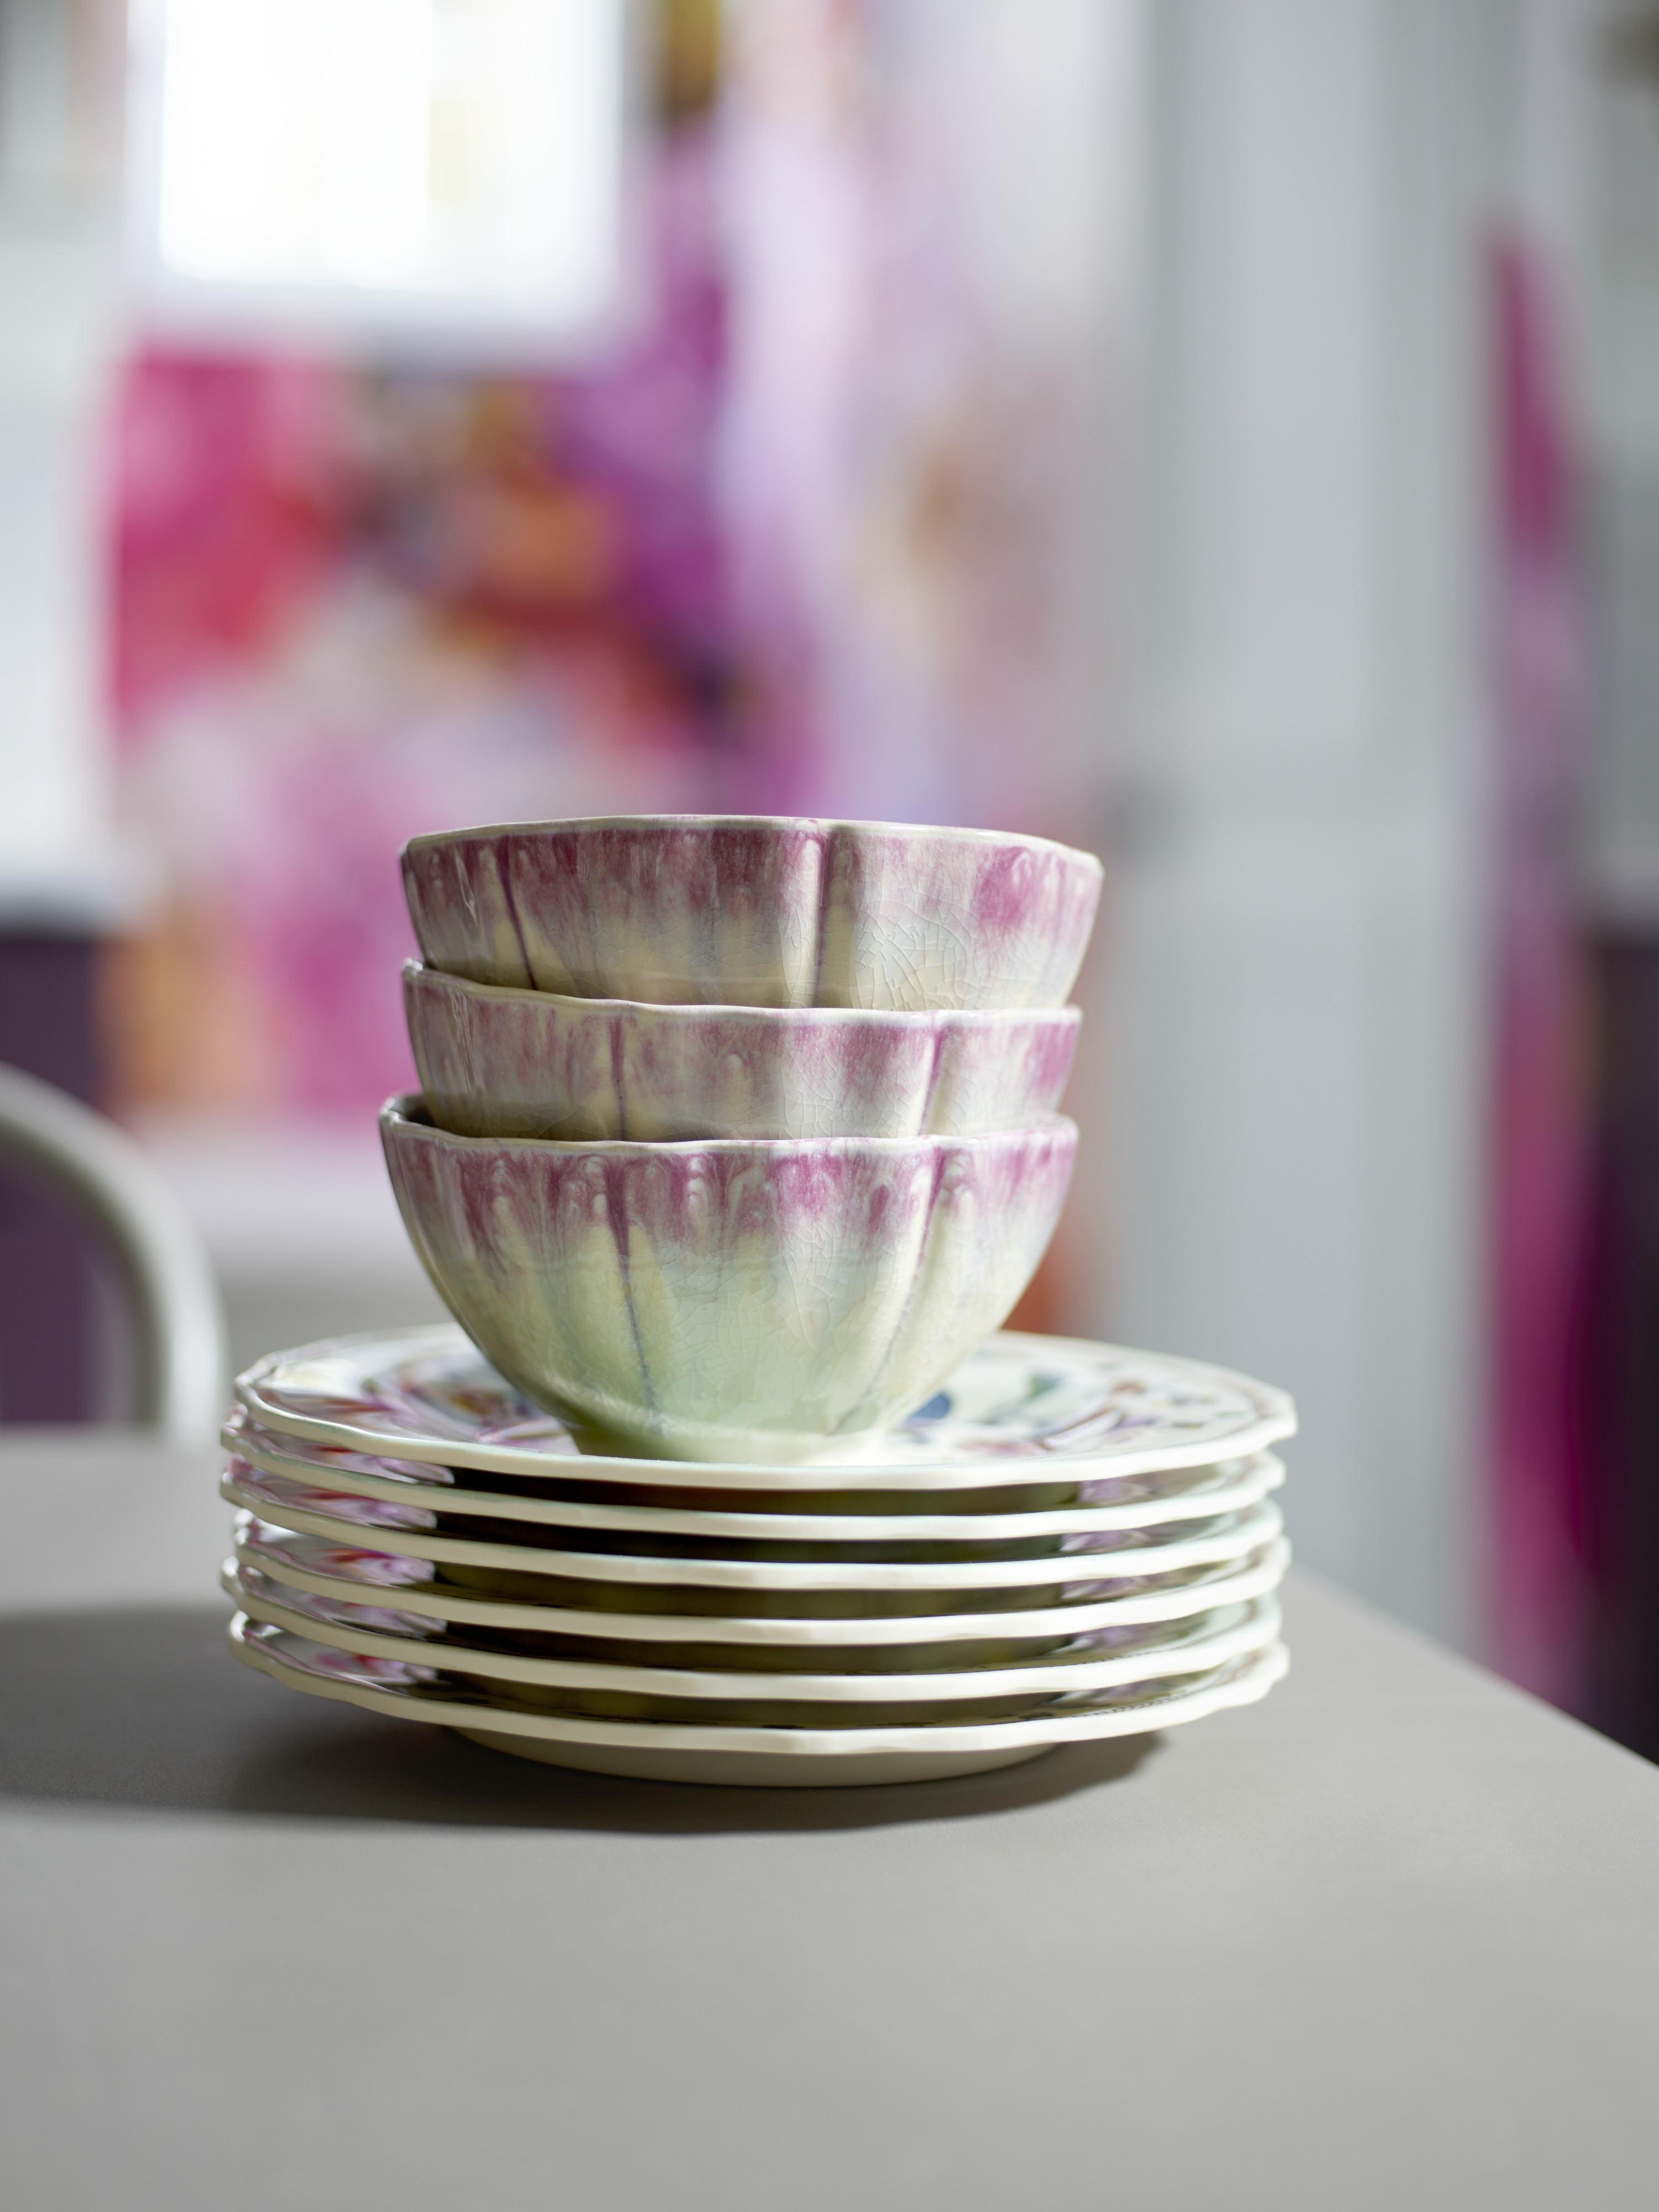 Think of your tableware and glassware as an opportunity to reinforce and expand your primary pattern.